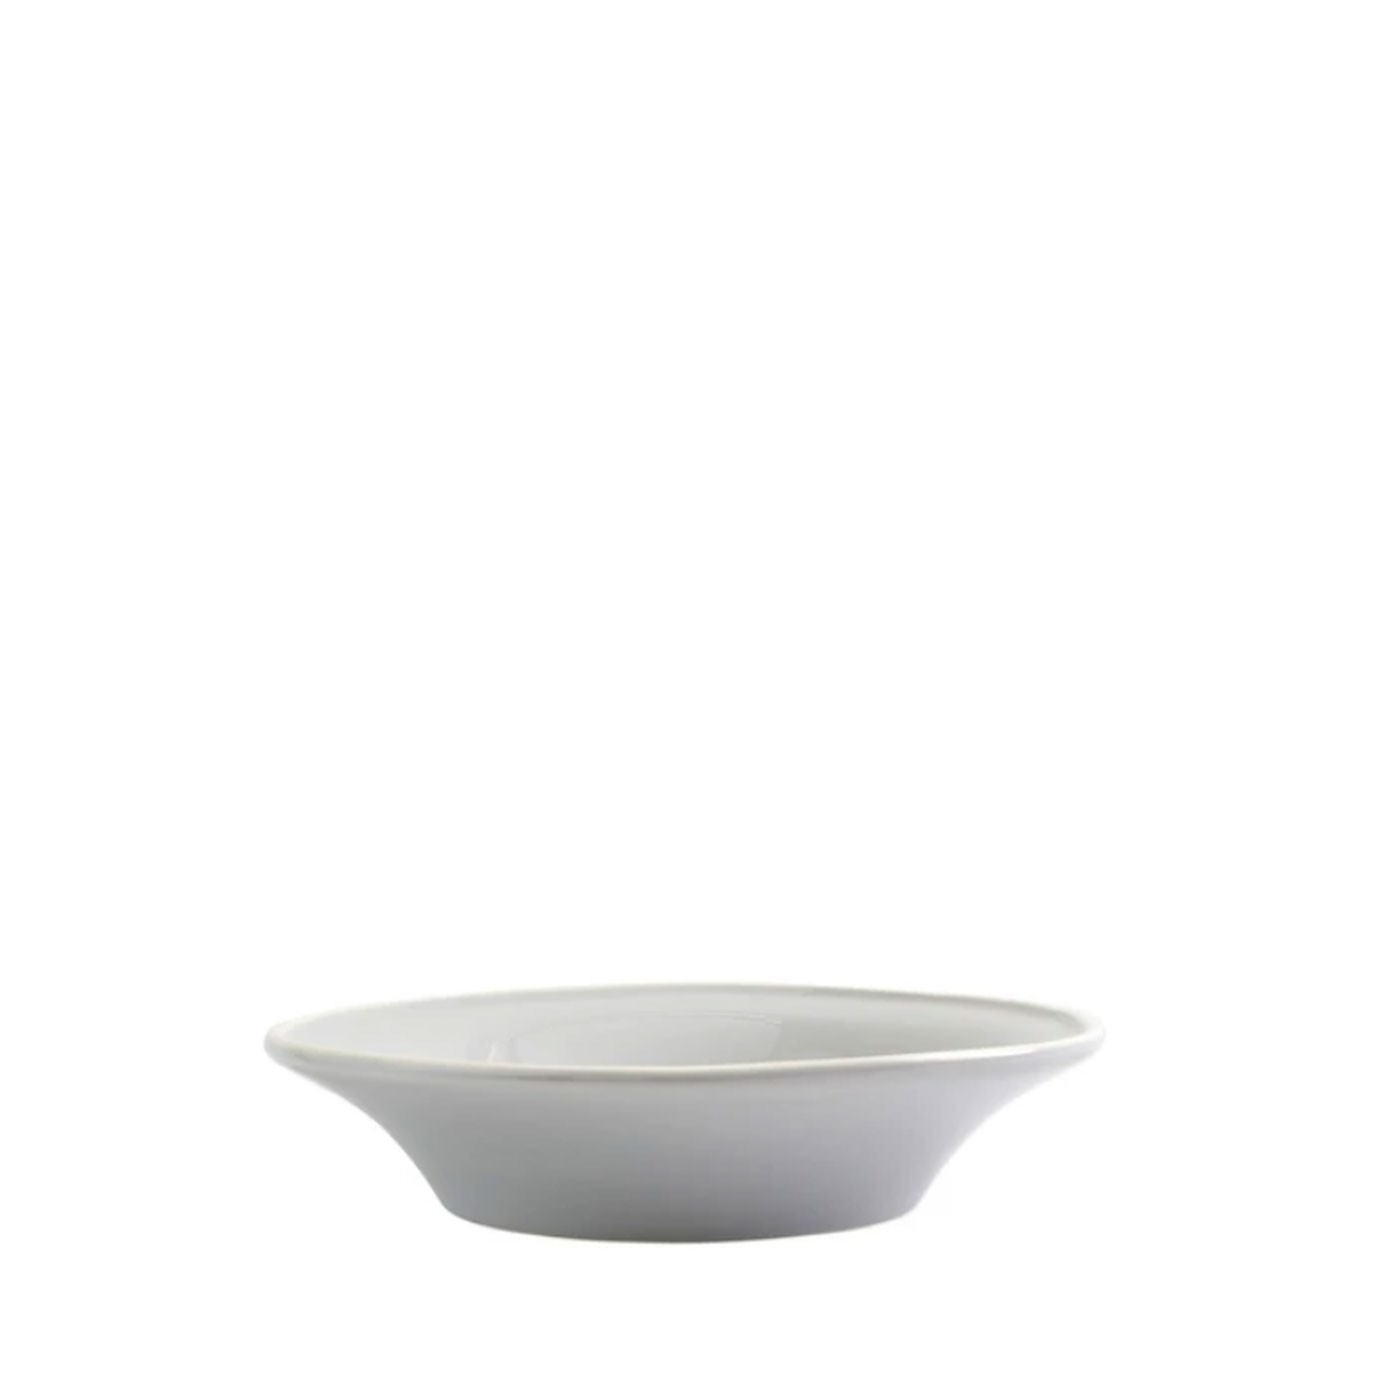 Chroma Light Gray Pasta Bowl